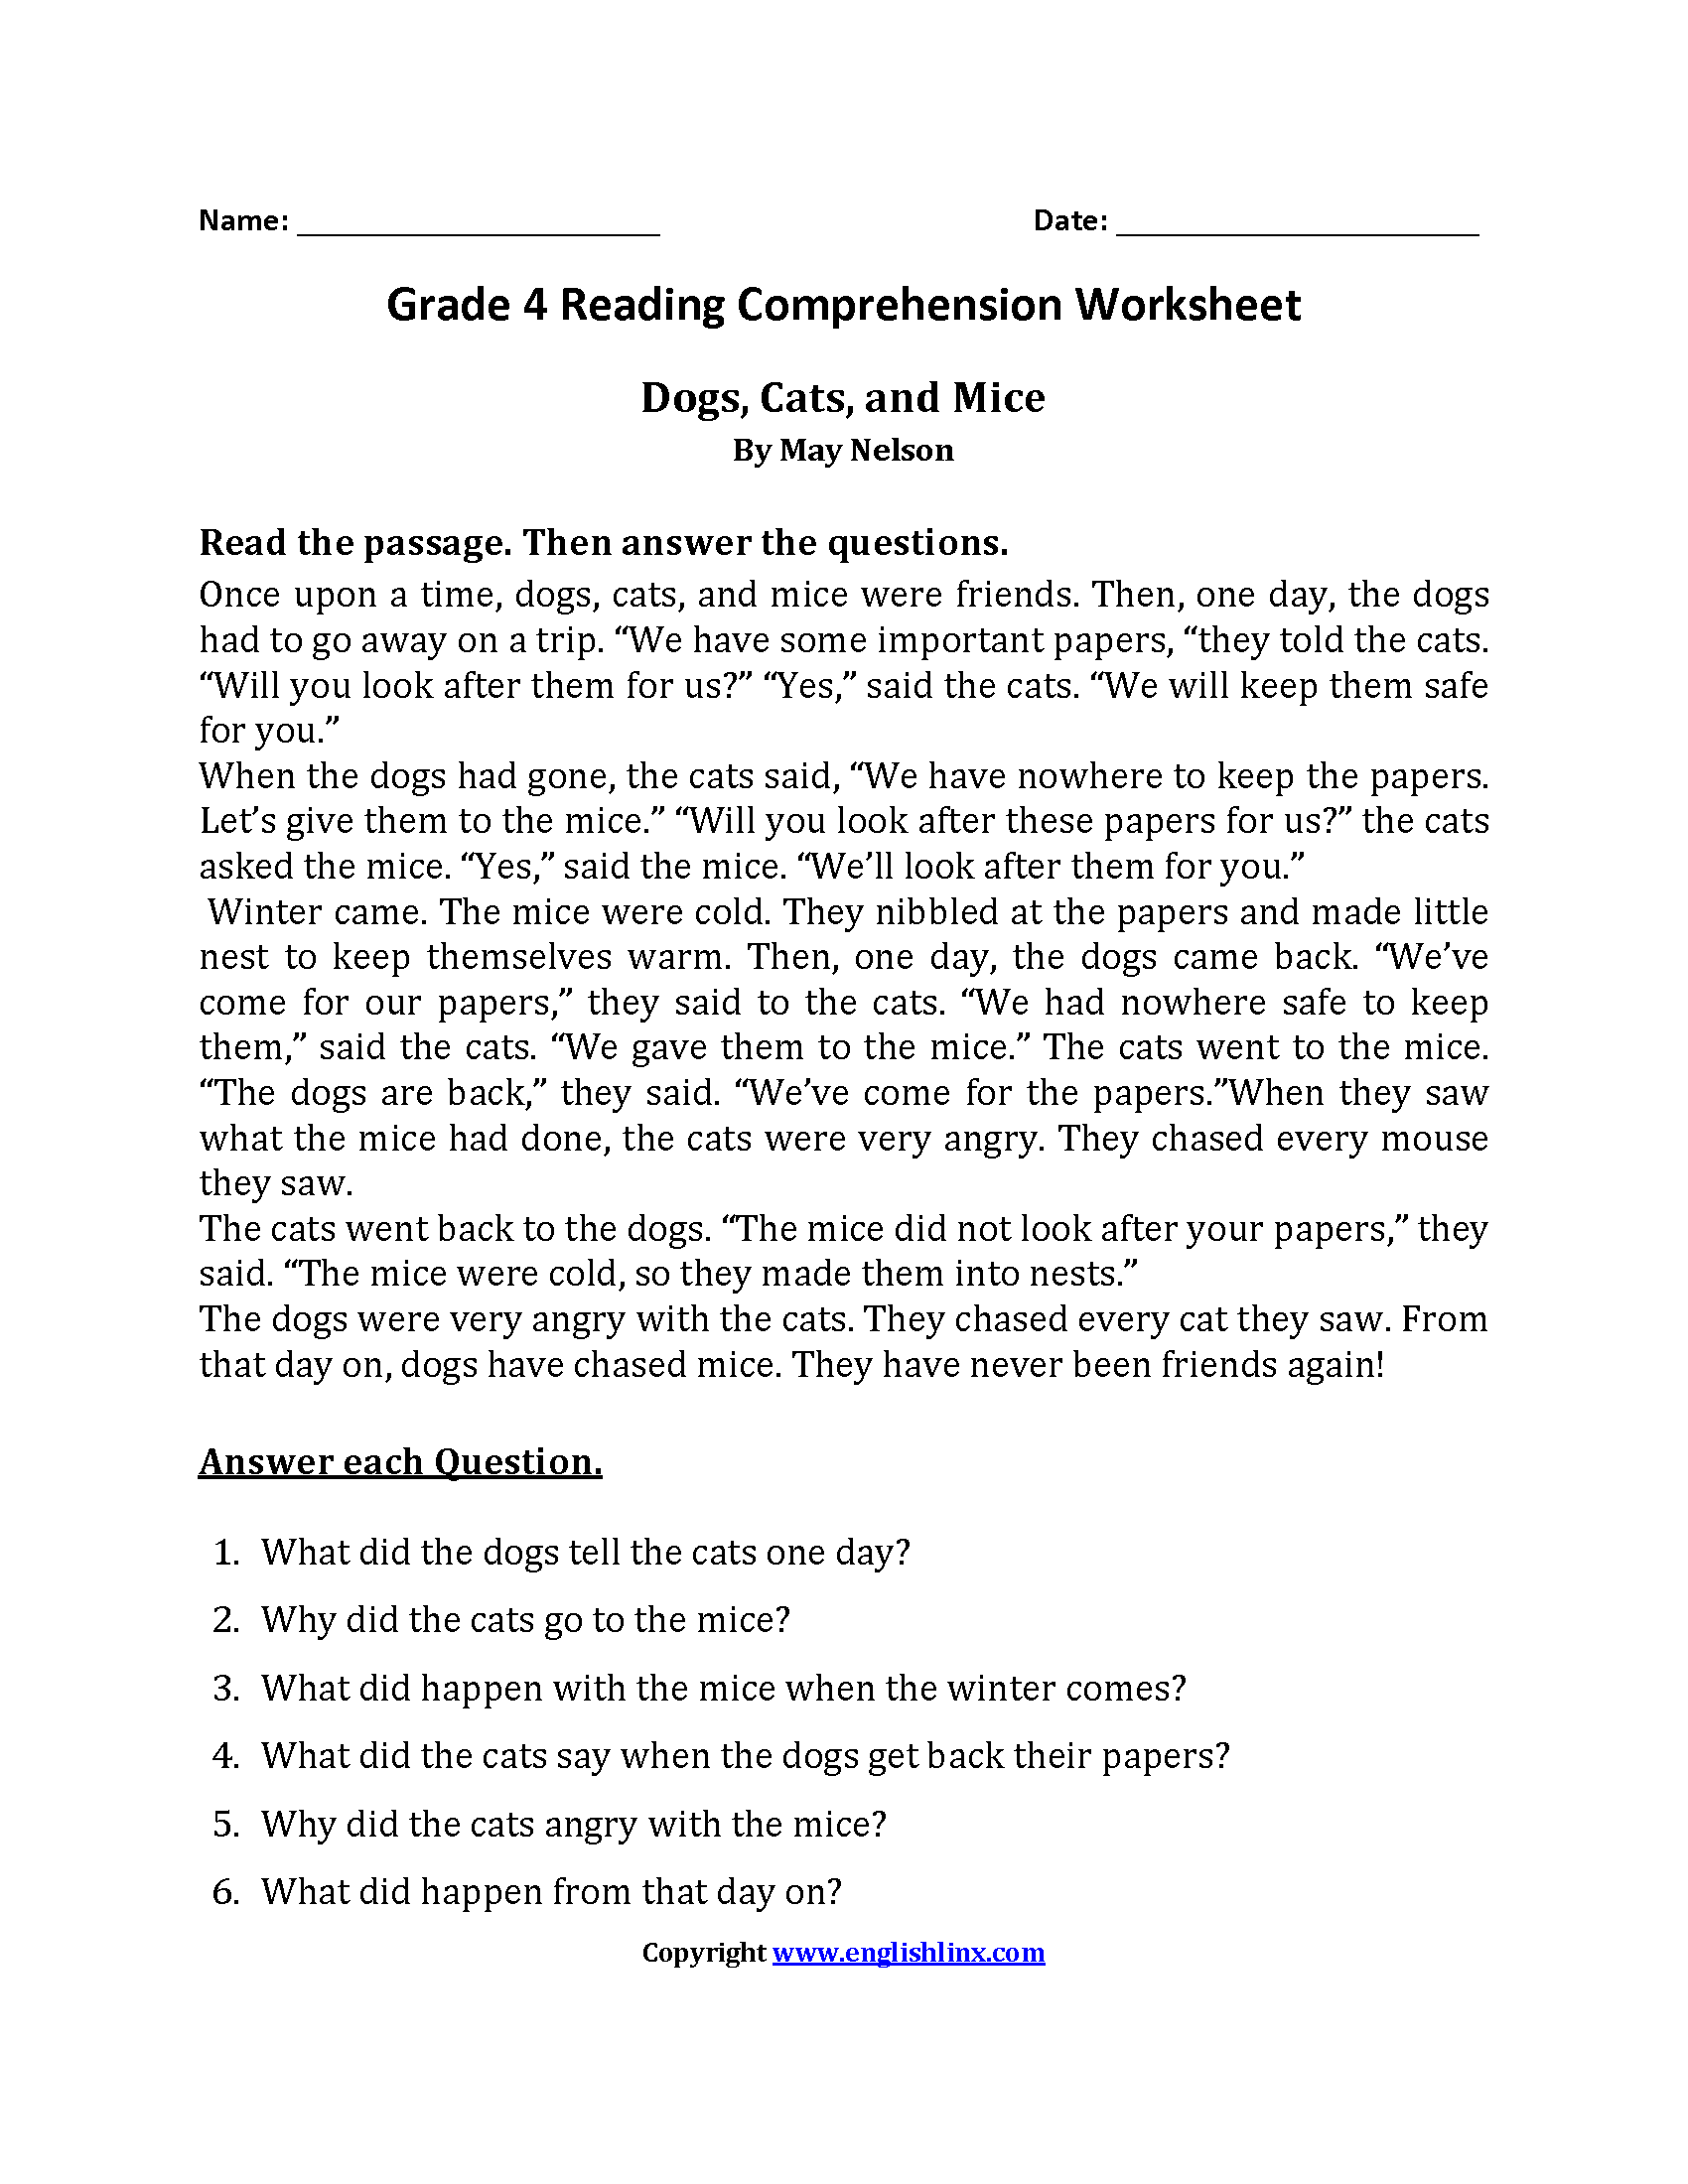 Worksheet 3rd Grade Reading Passages With Questions reading worksheets fourth grade worksheets